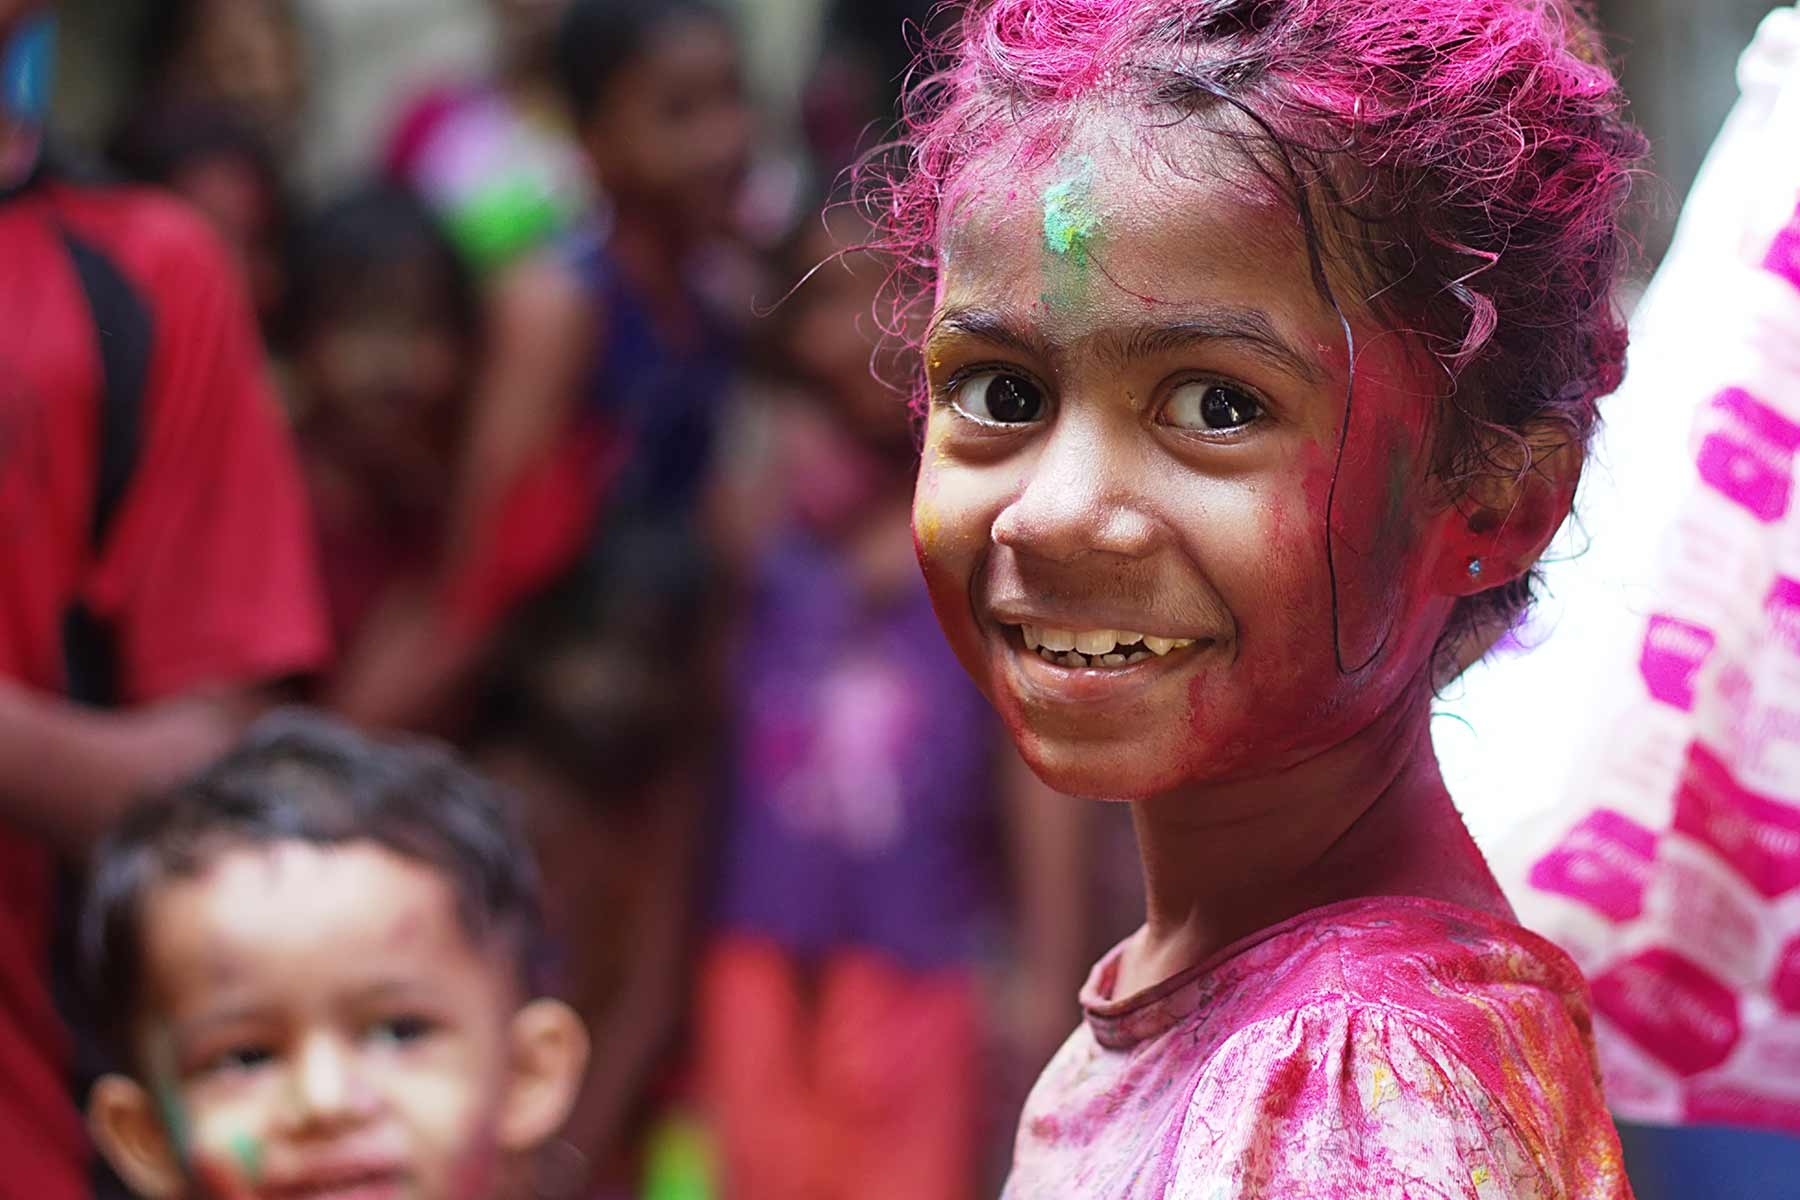 happy smiling little girl from India